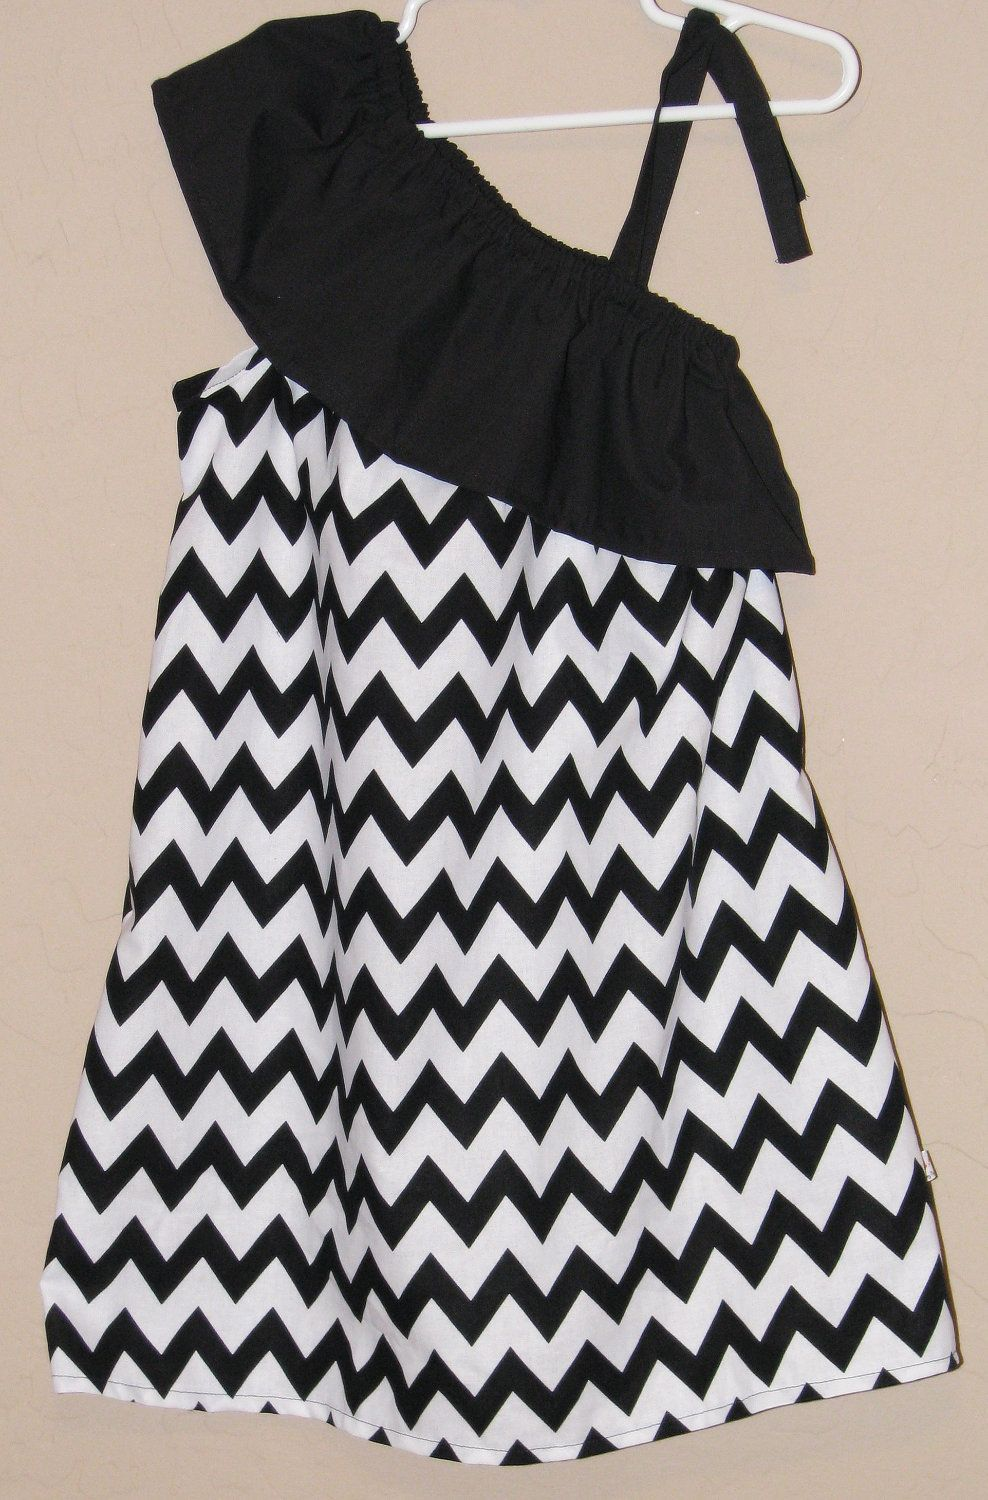 f454750b1 Ruffled One Shoulder Chevron Dress - Baby Toddler Girl Designer ...